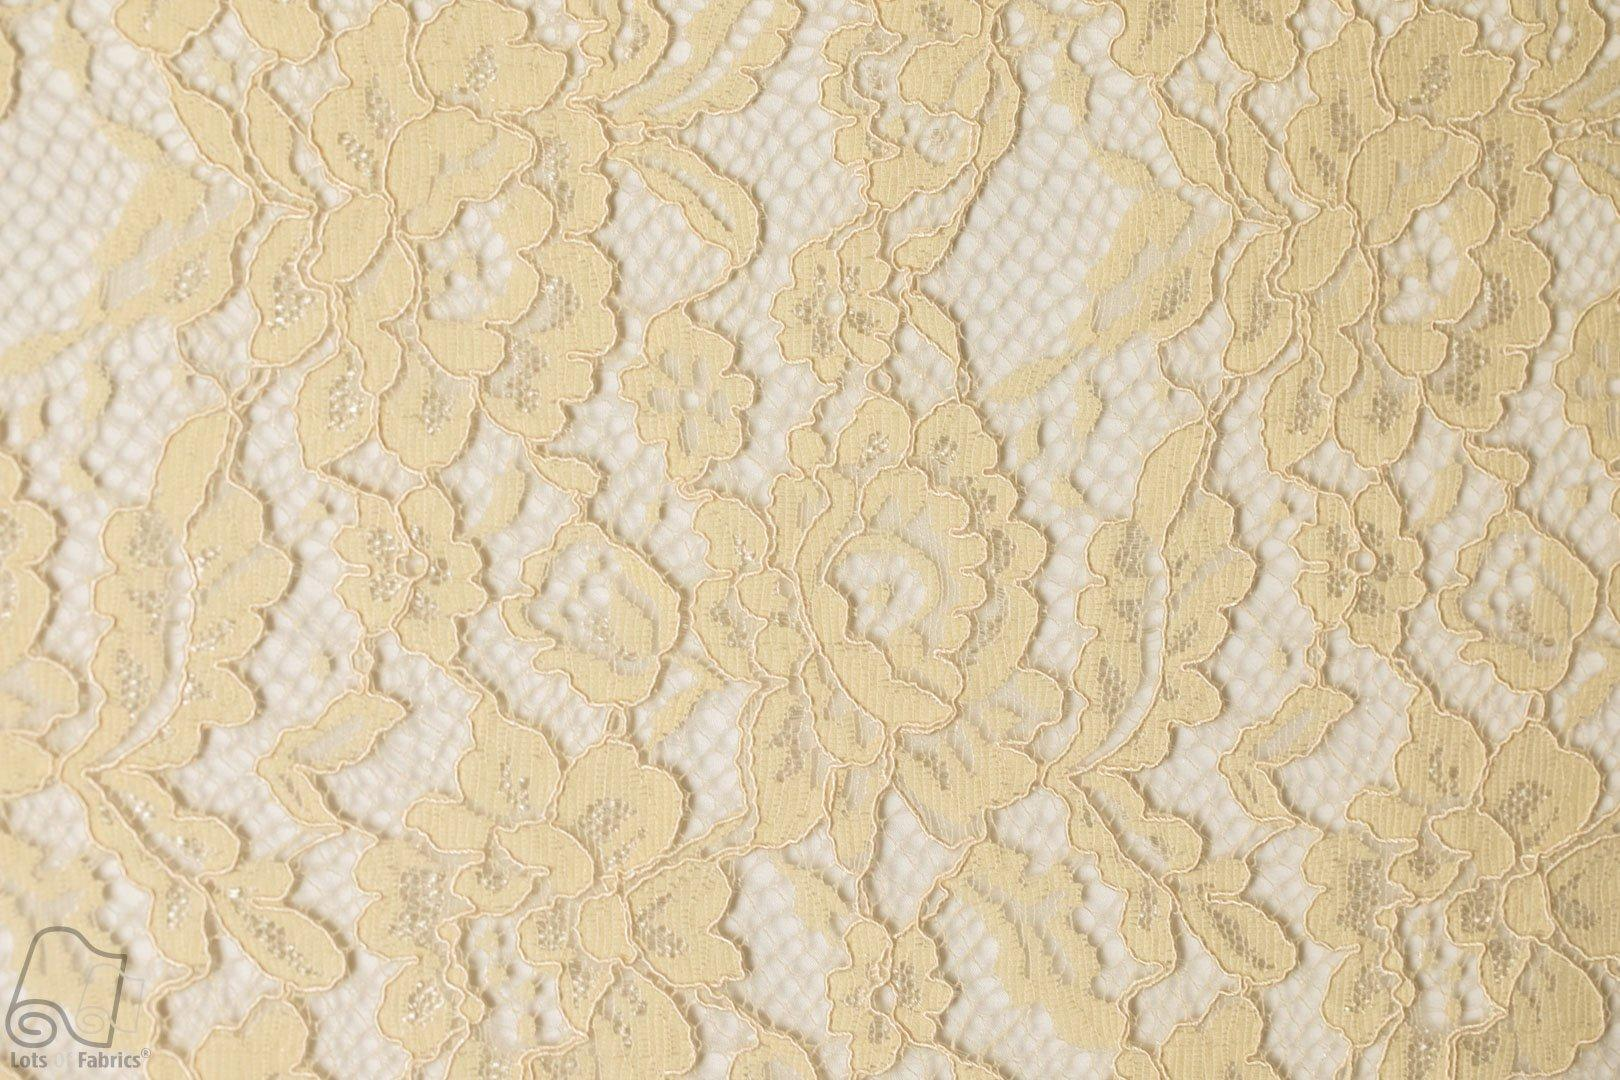 Wedding Dress Fabric.Embroidered Flat Lace Classic Wedding Dress Fabric